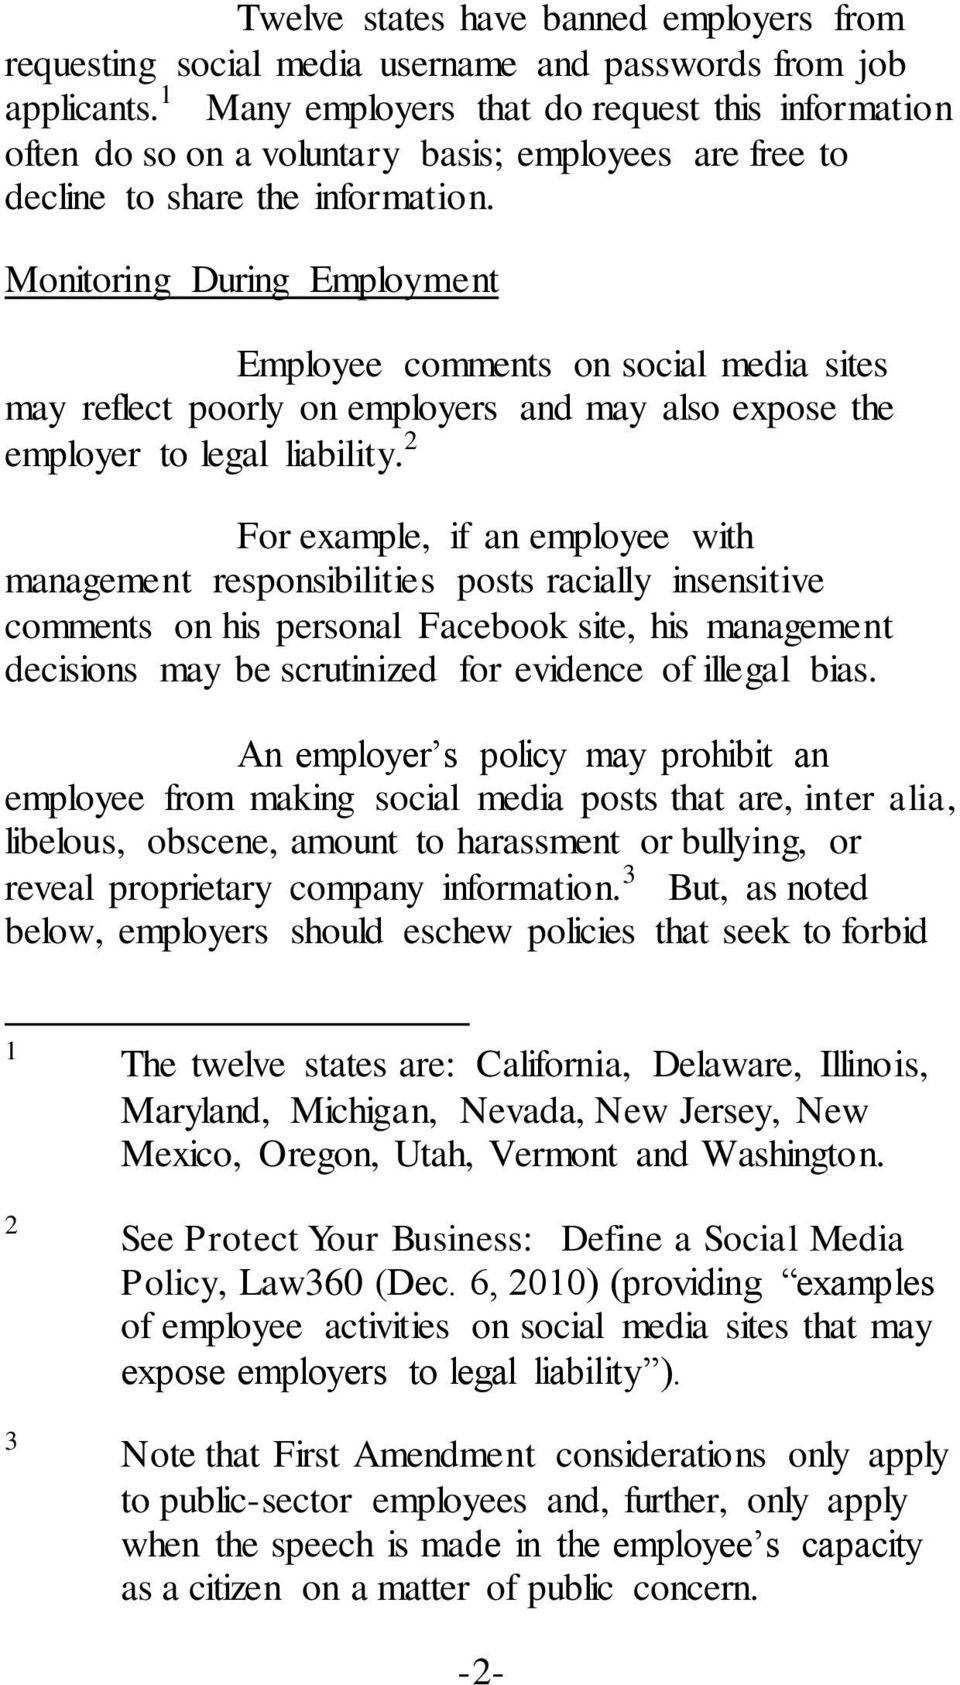 Monitoring During Employment Employee comments on social media sites may reflect poorly on employers and may also expose the employer to legal liability.